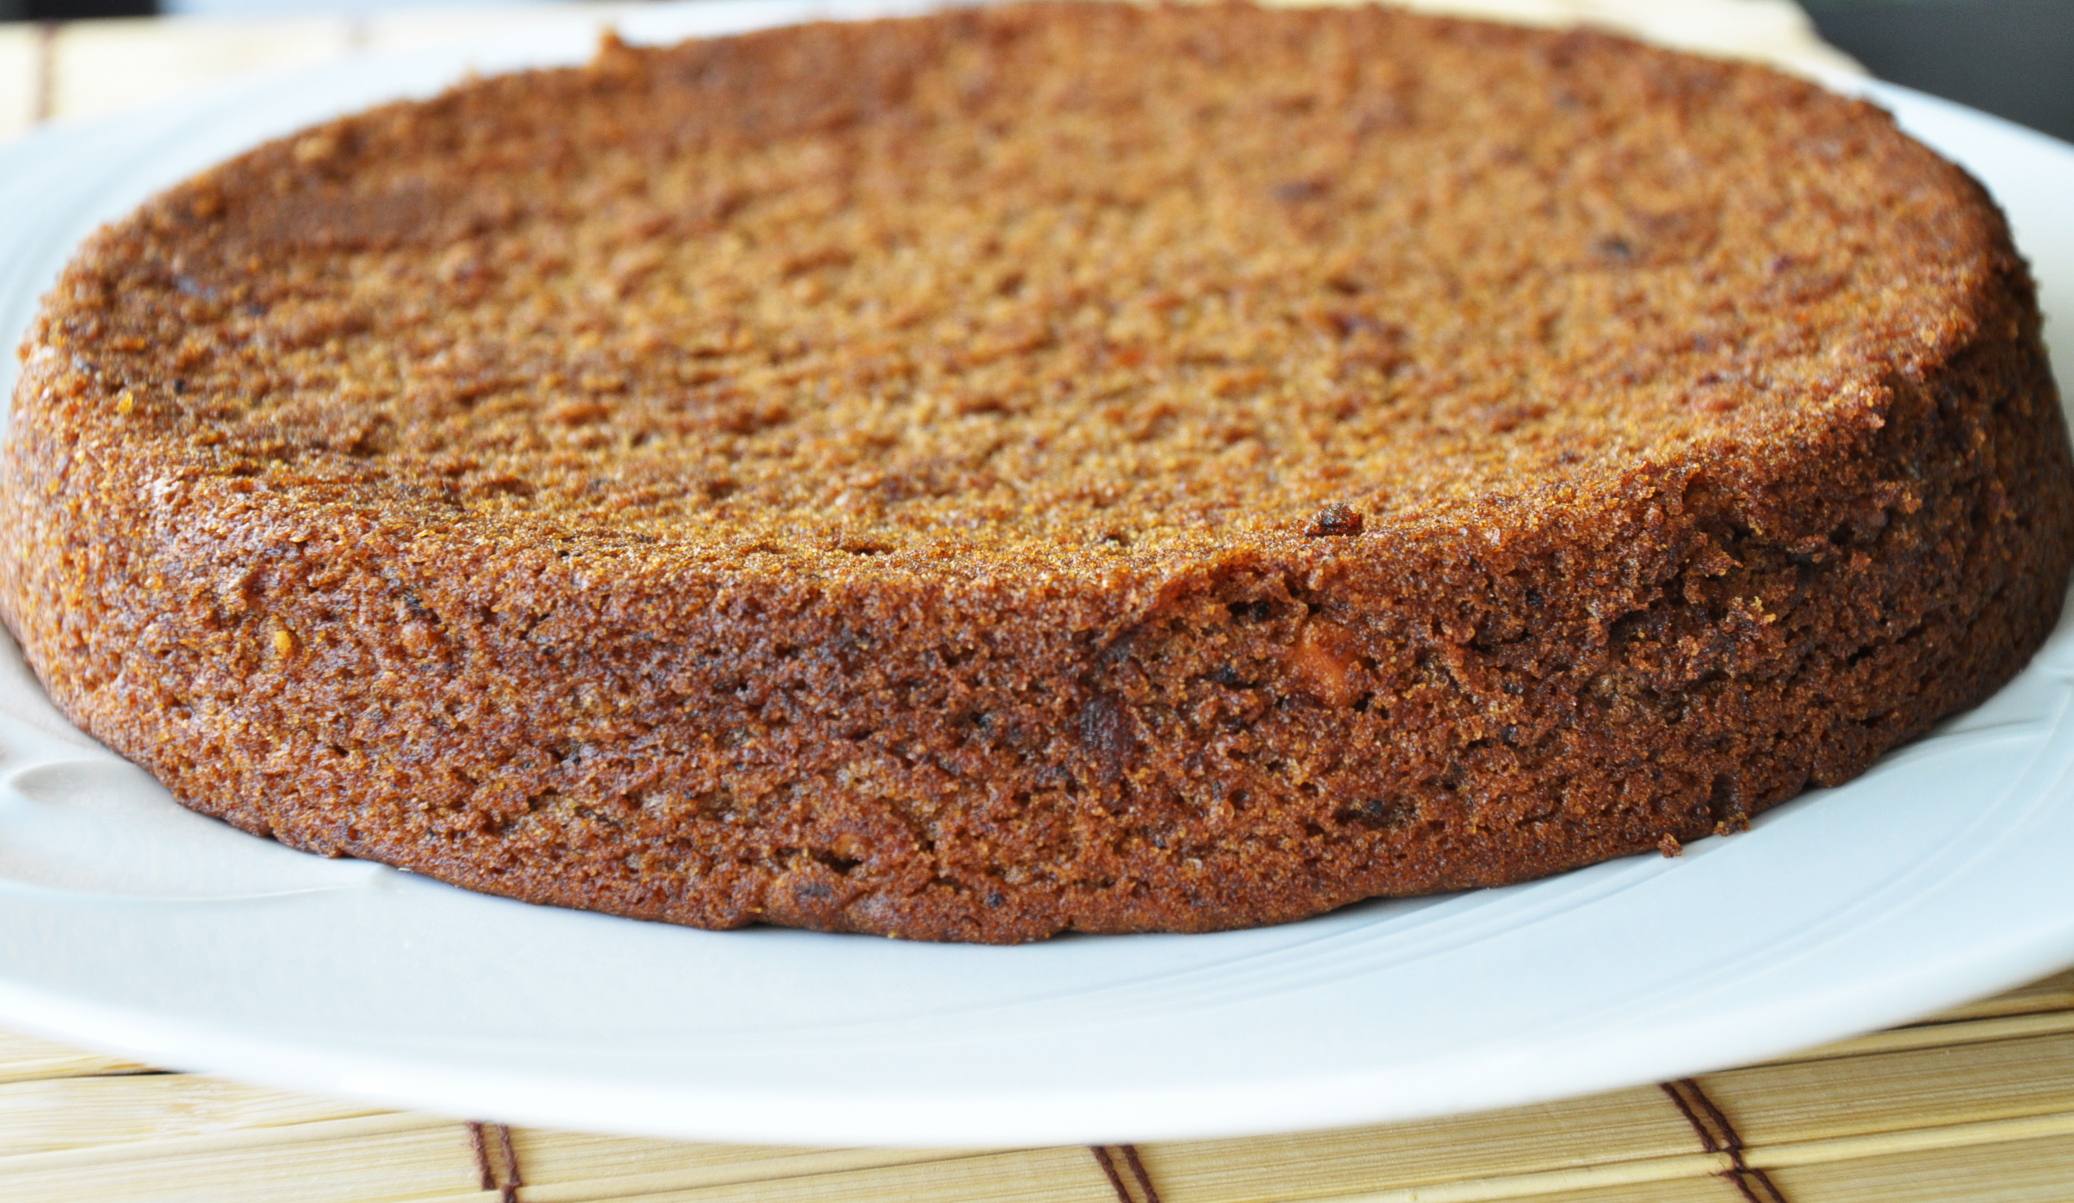 Vegan Whole Wheat Date Walnut Cake